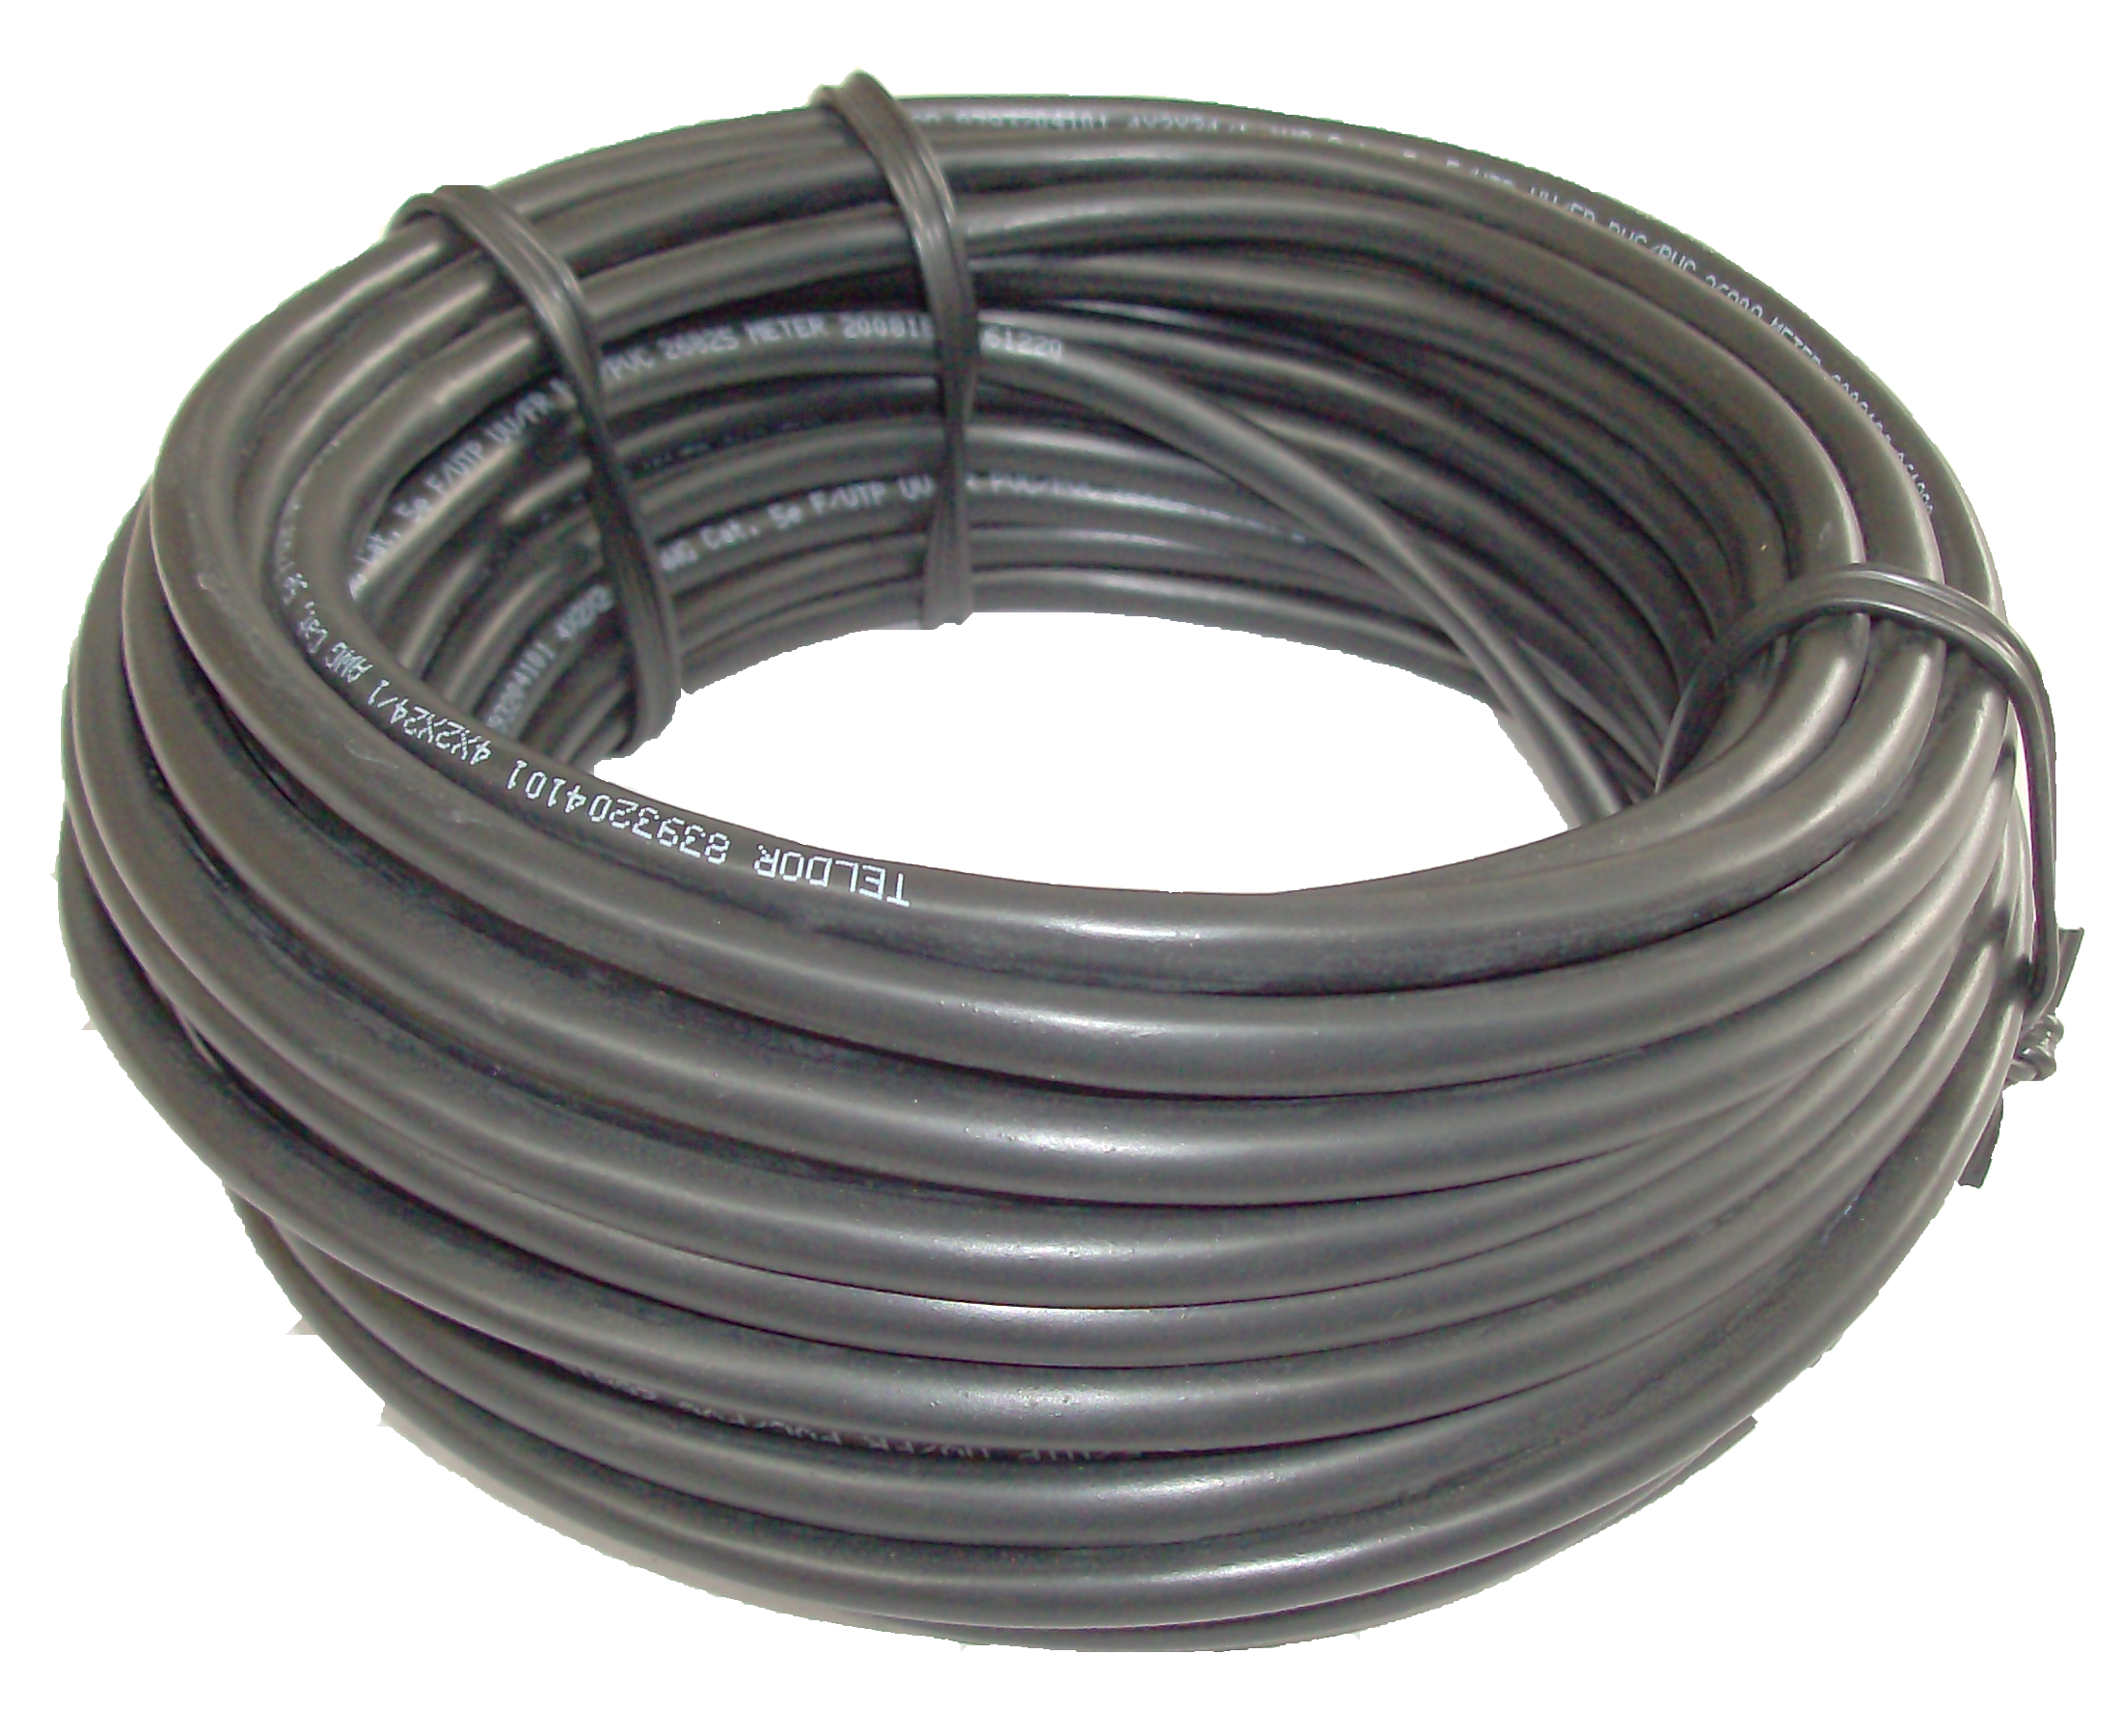 Outdoor Ethernet Cable Ftp Cat5e 20mt Cat 5e Wiring